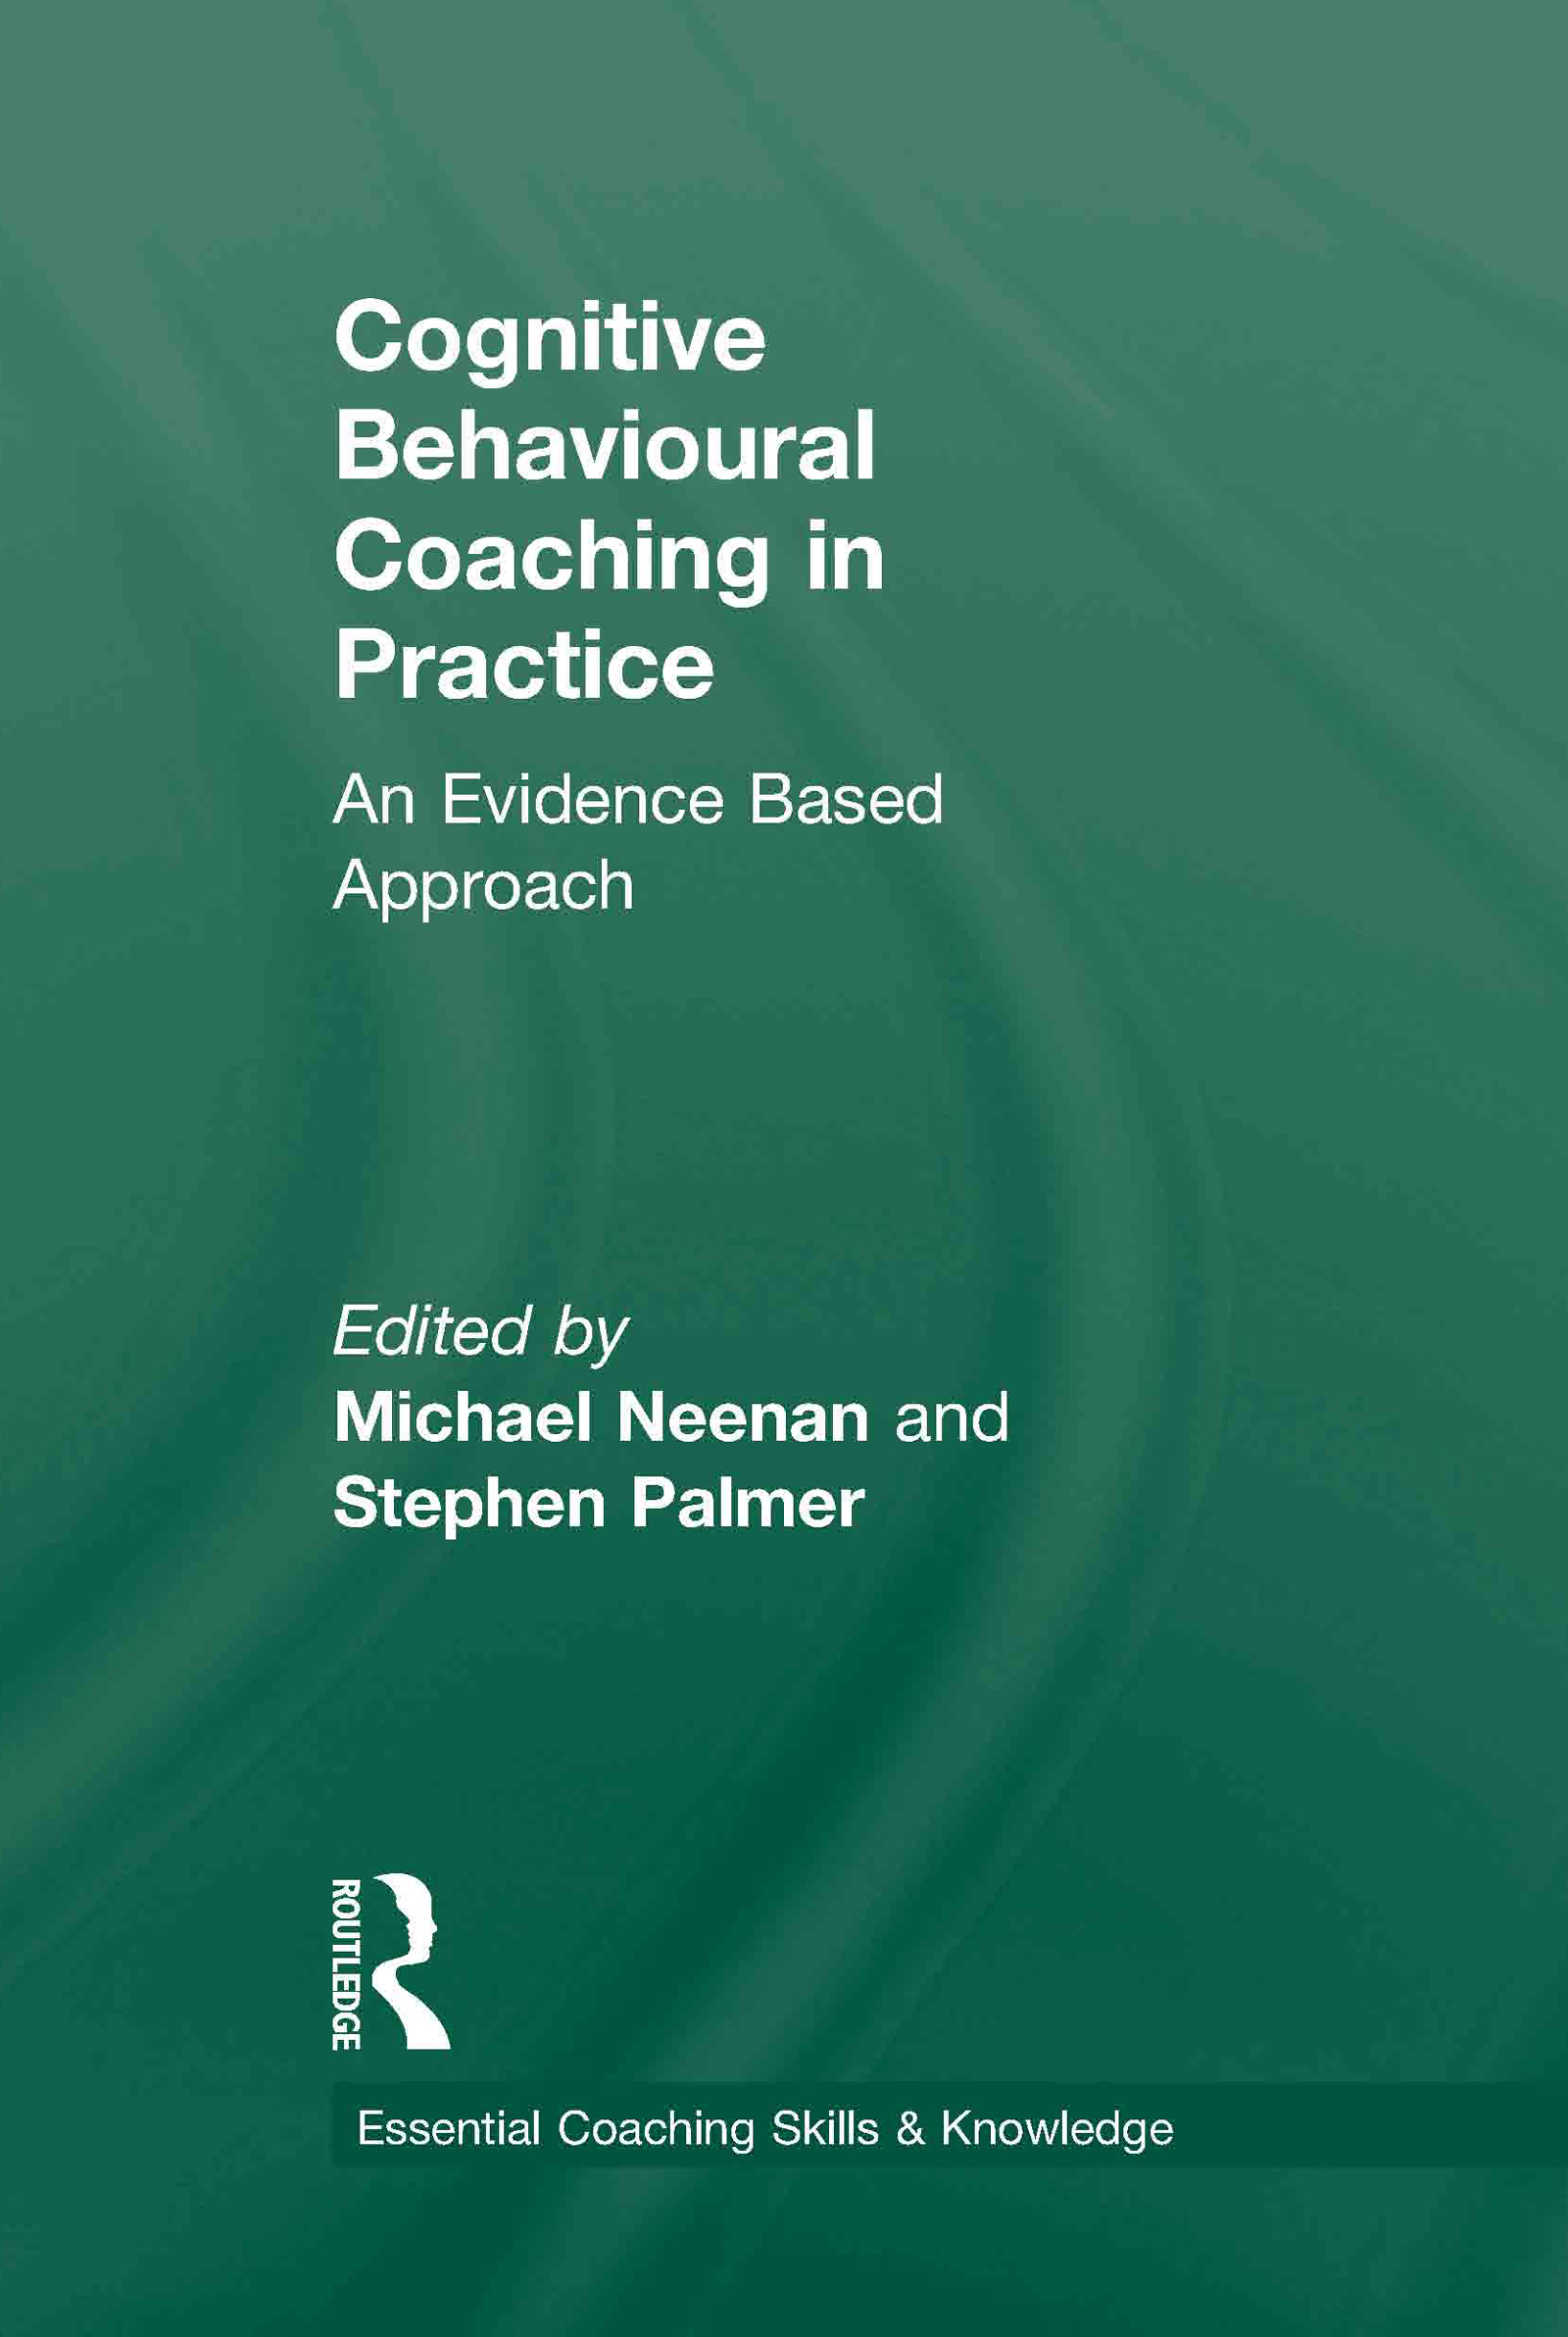 Cognitive Behavioural Coaching in Practice: An Evidence Based Approach book cover